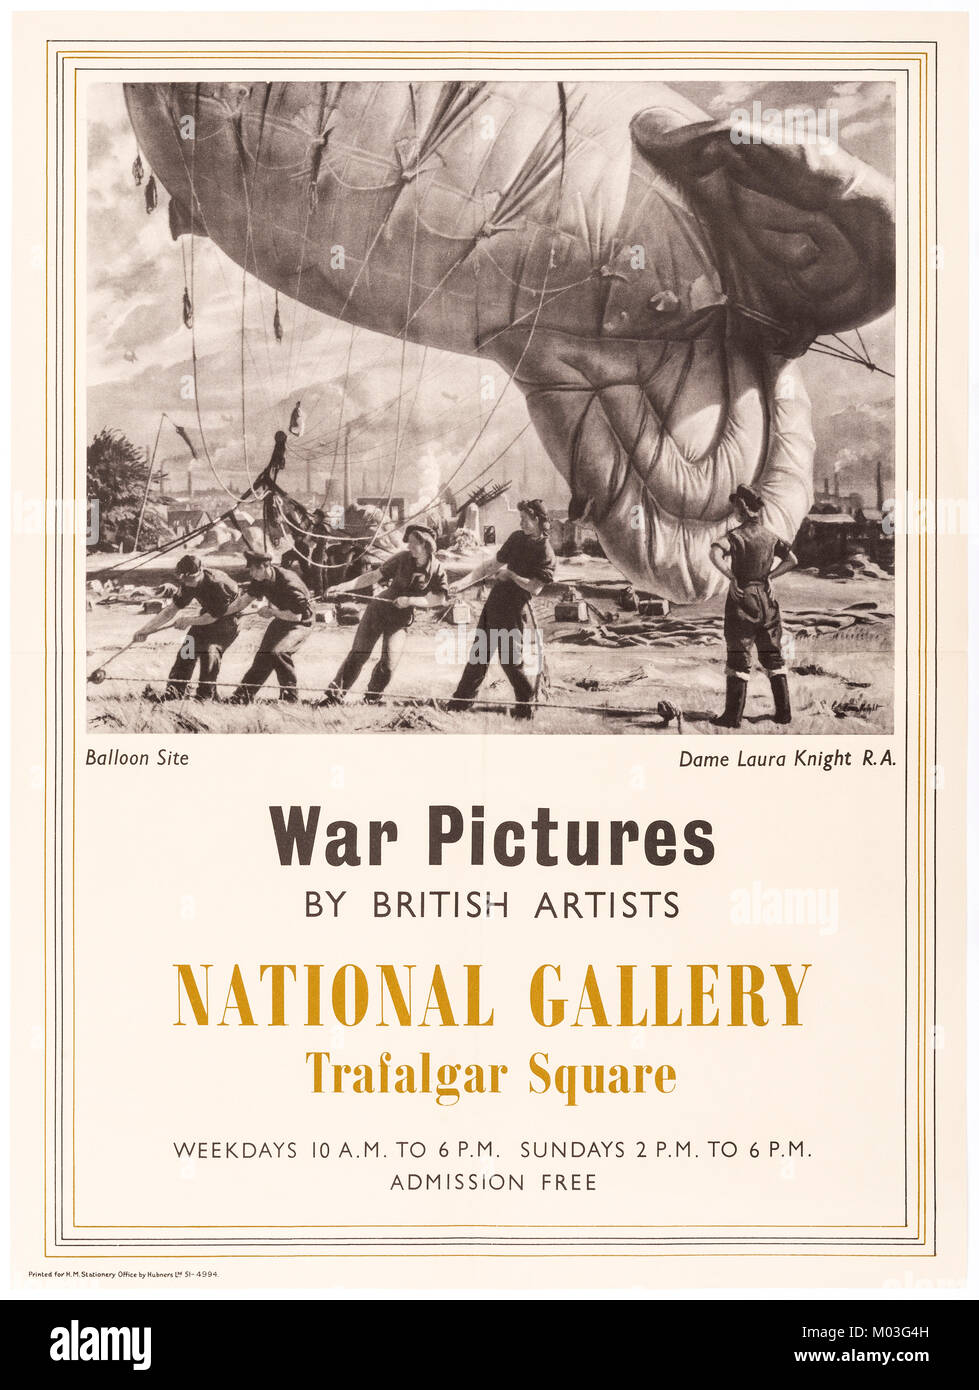 World War II poster for War Pictures exhibition at The National Gallery, London - Stock Image